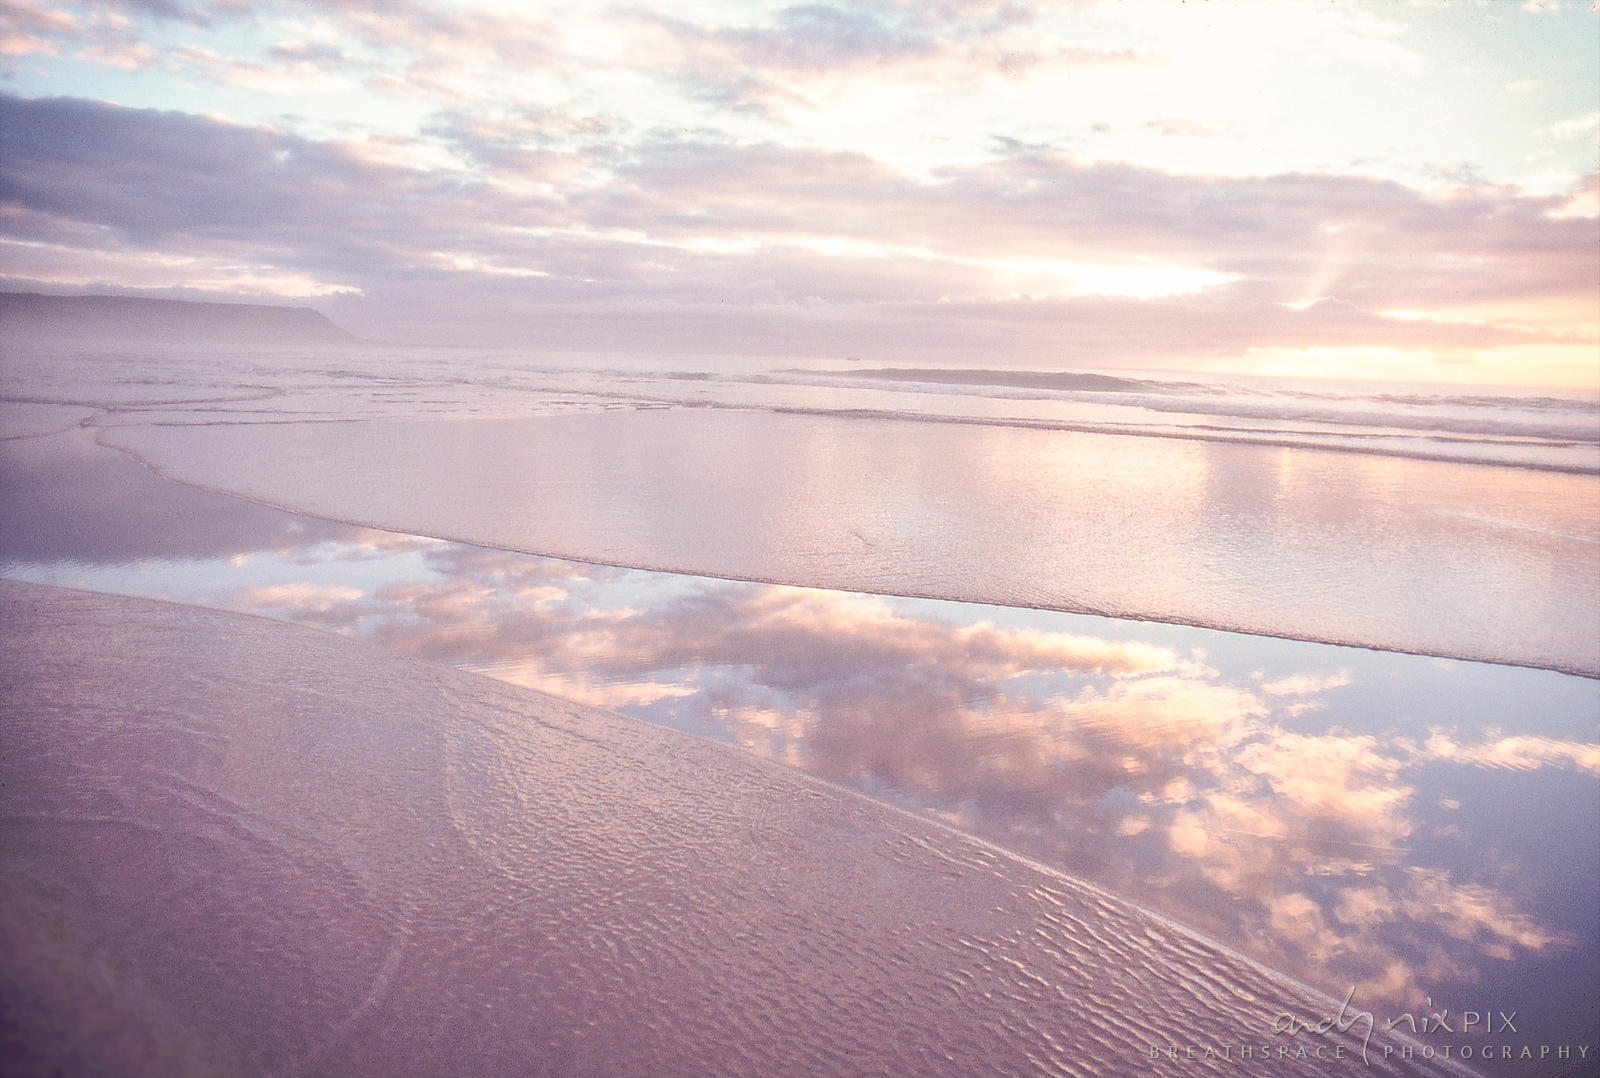 Soft pink sunset clouds reflected in water on the beach.